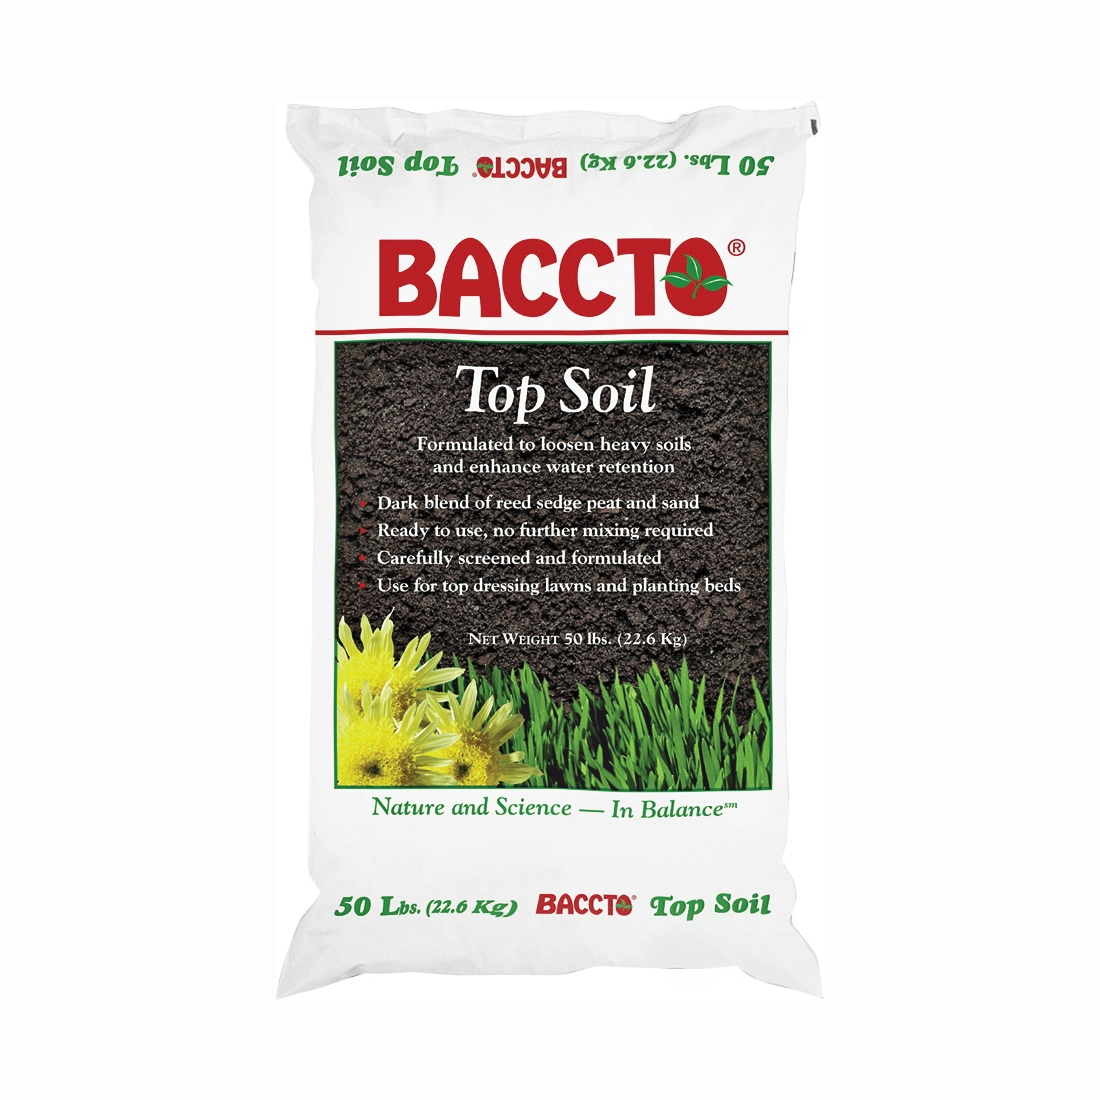 Picture of BACCTO 1550P Top Soil, Fibrous with Granular Texture, 50 lb Package, Bag